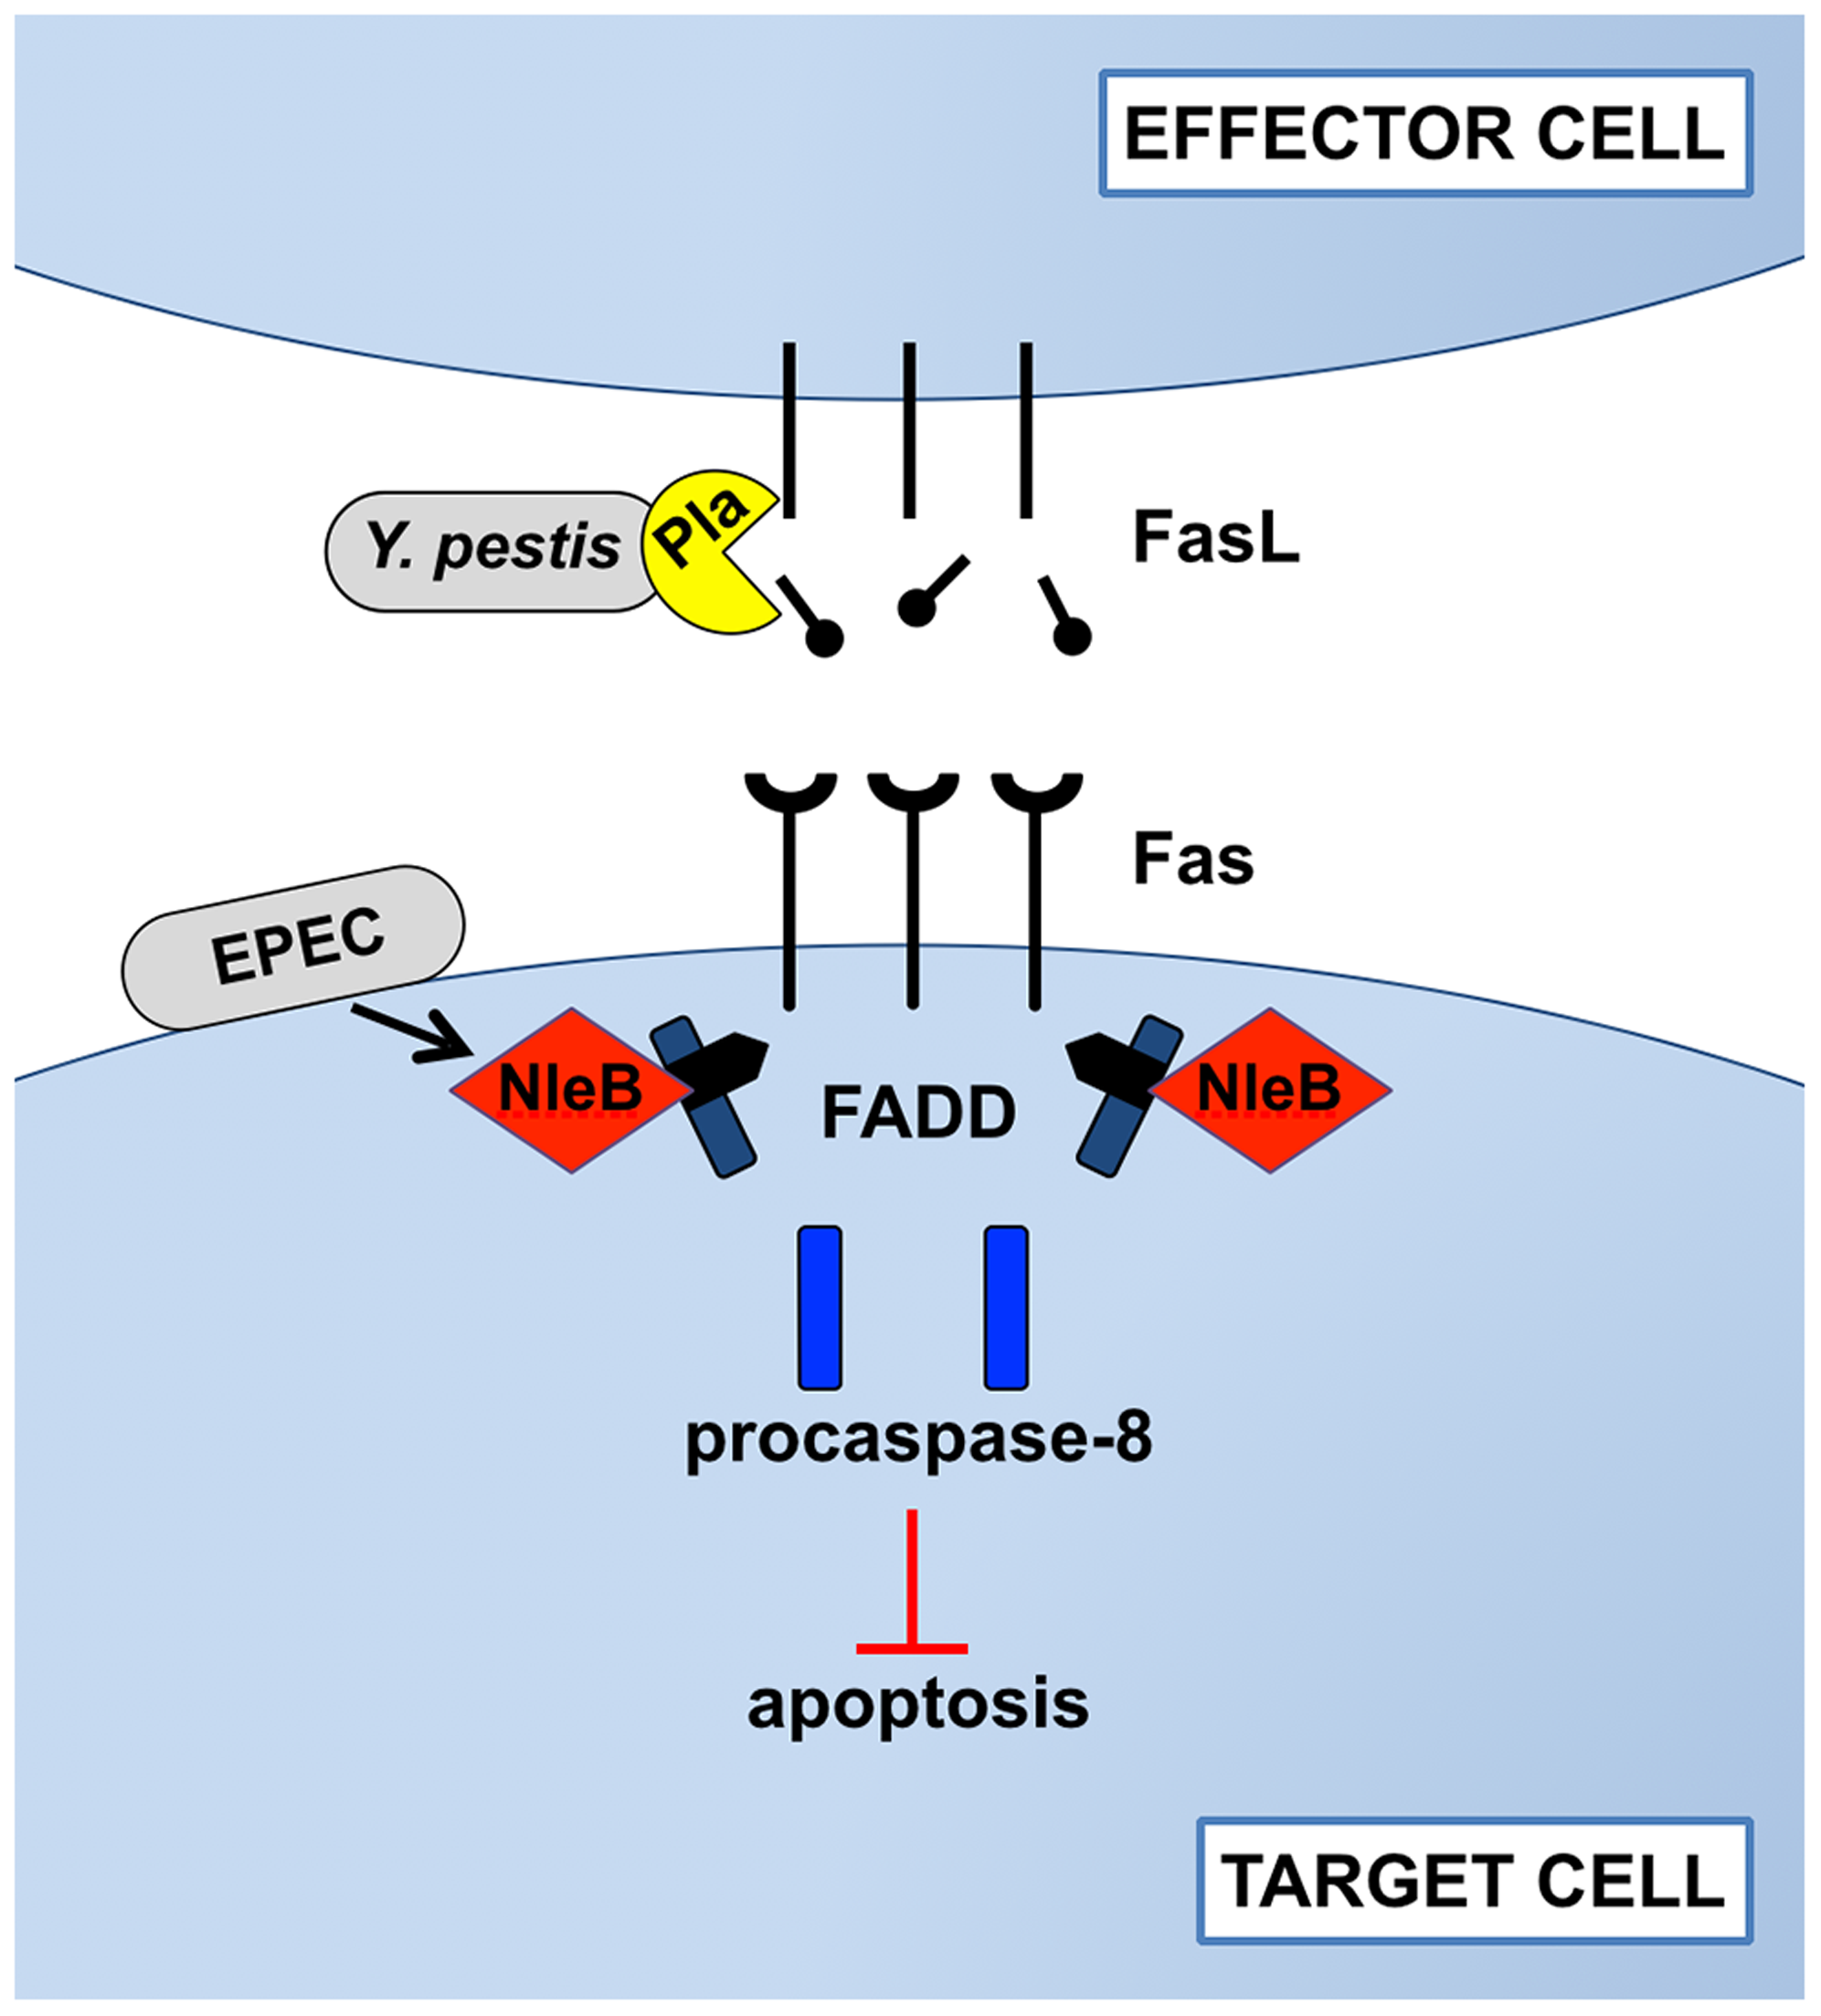 Disruption of Fas-FasL signaling by Pla of <i>Y. pestis</i> and NleB of EPEC.